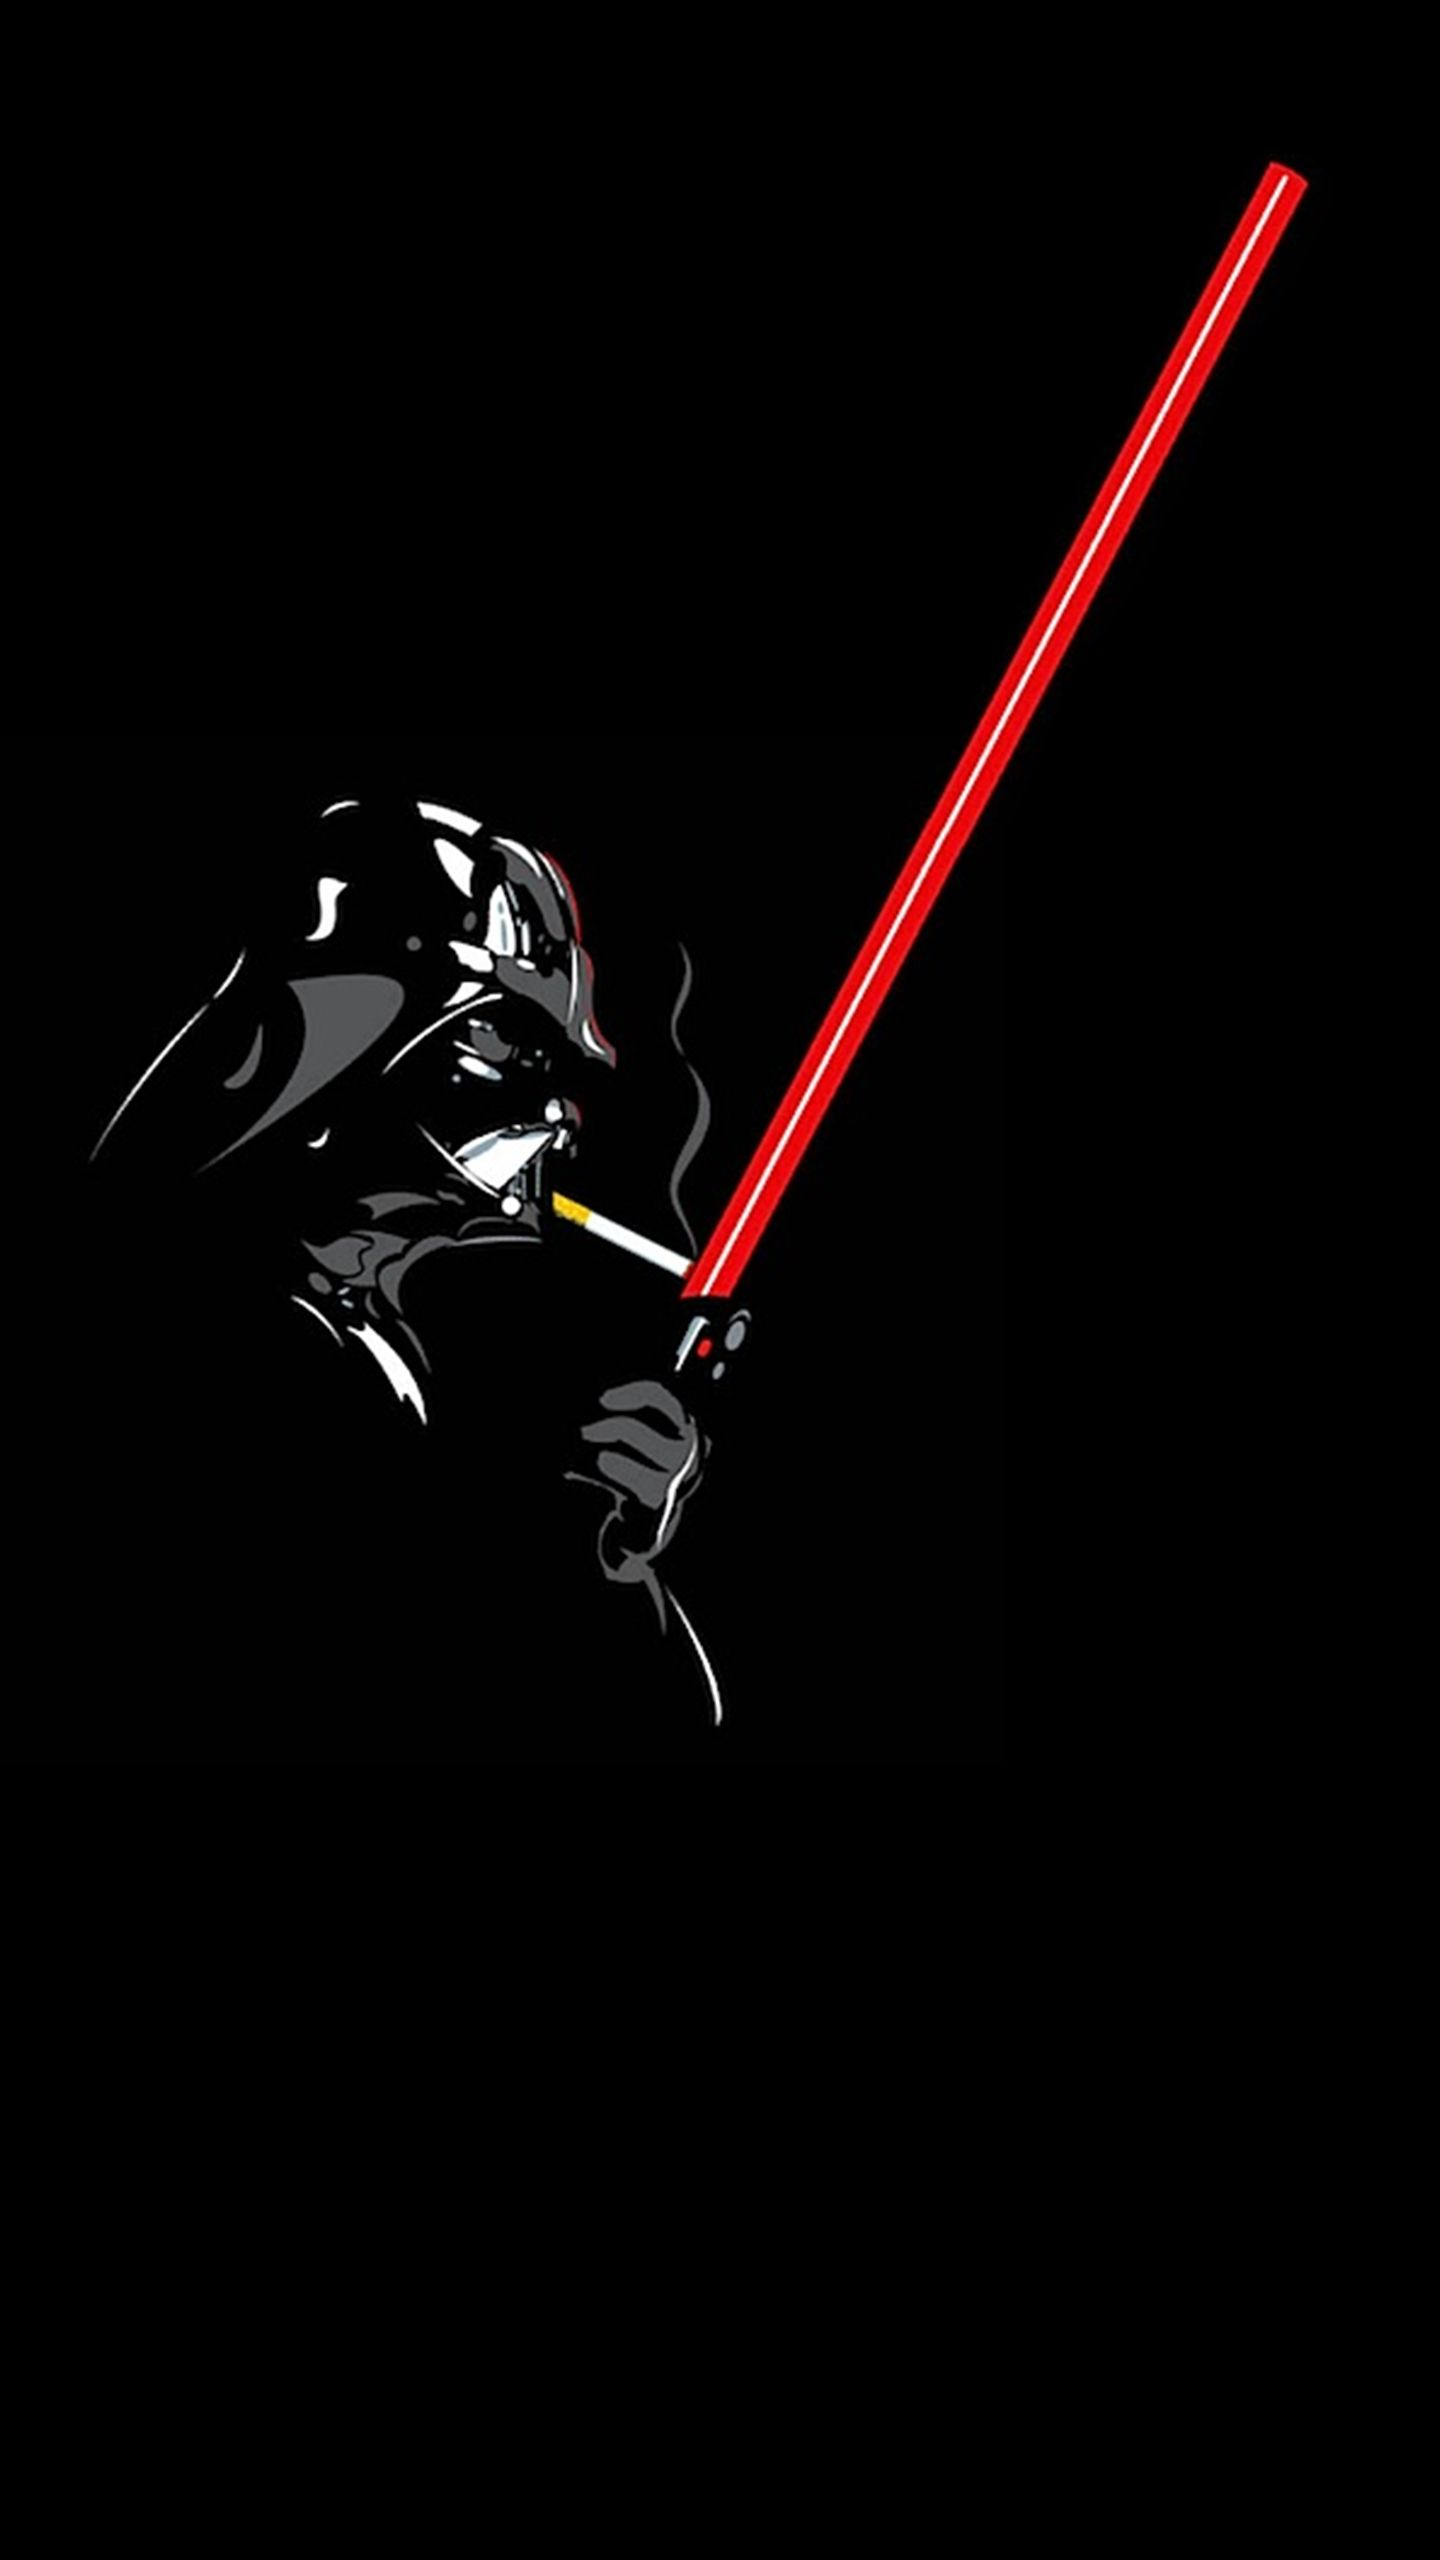 Good Wallpaper Home Screen Star Wars - 91a2c8ef60bf53235439ac2f4f838b7a  Pictures_809689.jpg